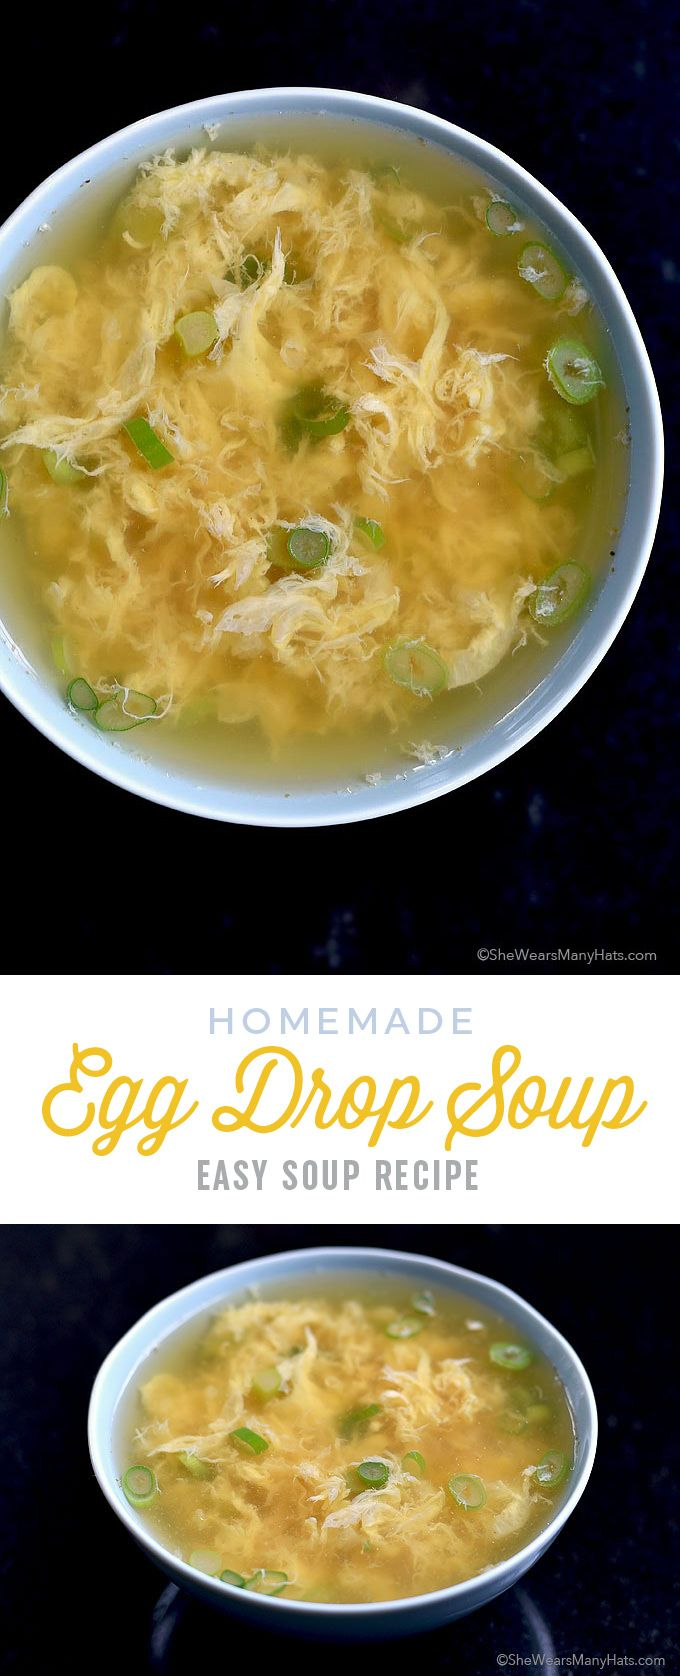 egg drop soup recipe is quick and easy to make in about 10 minutes